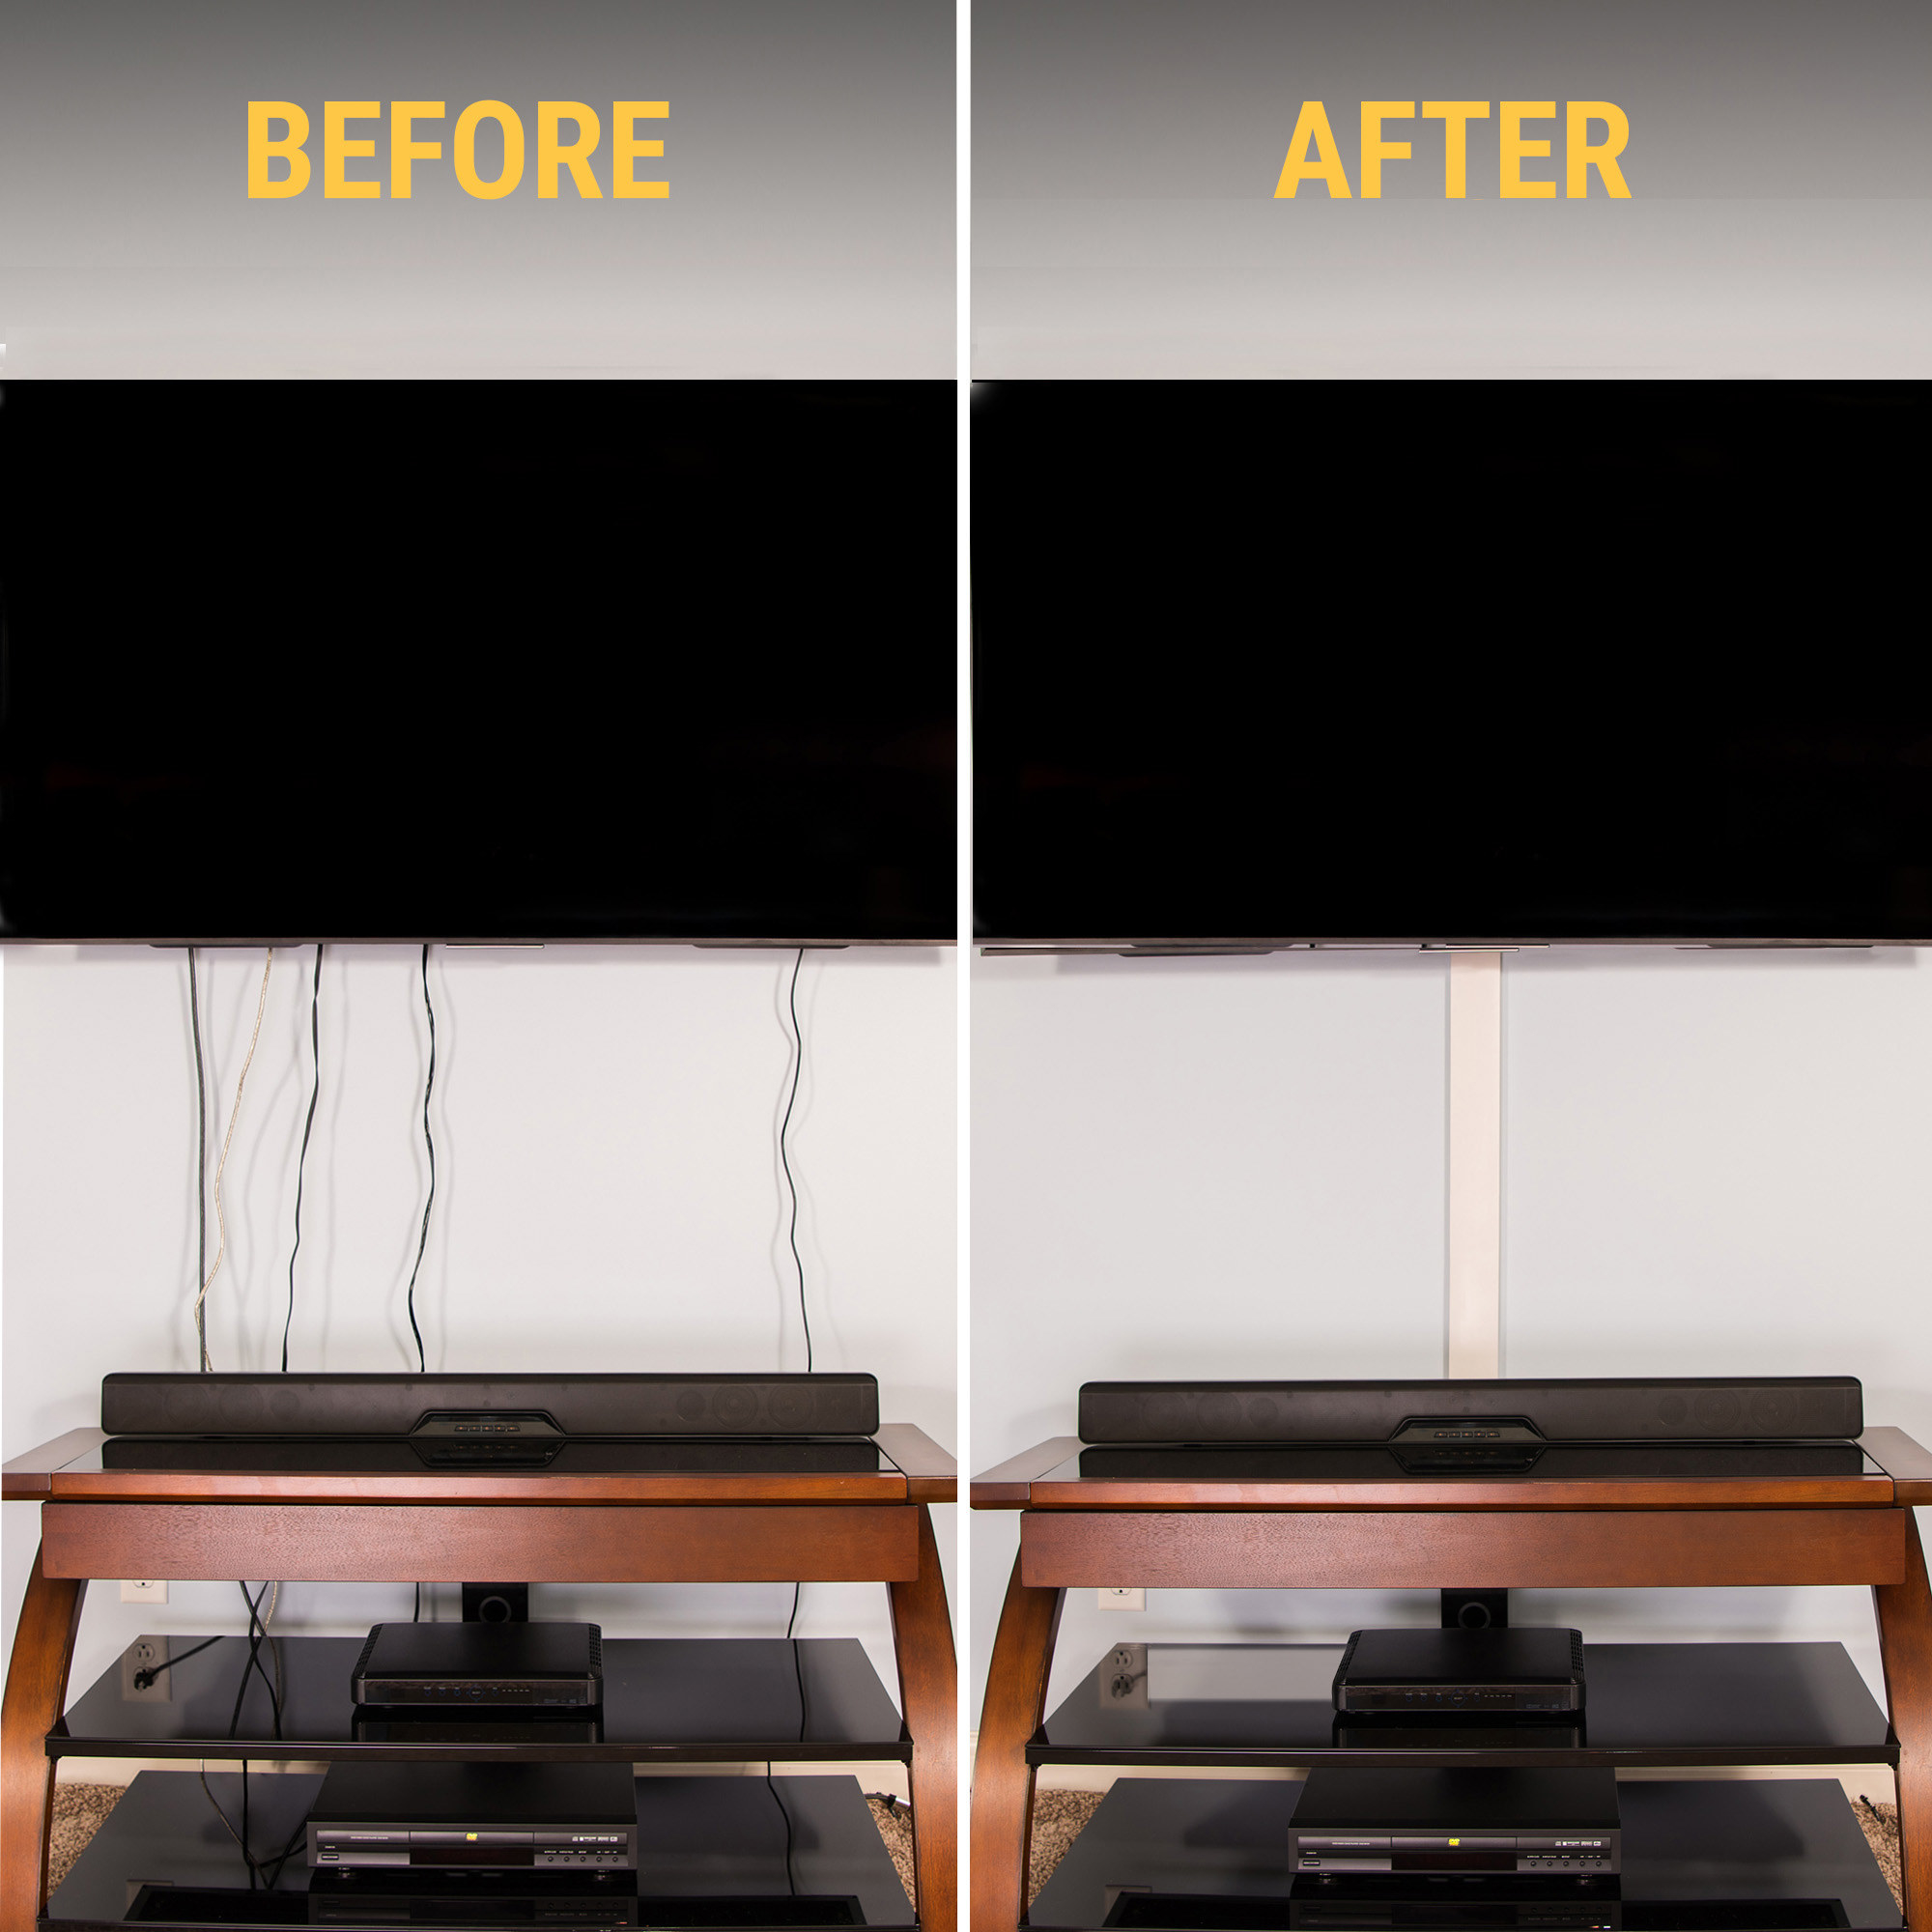 The cord concealers, before and after